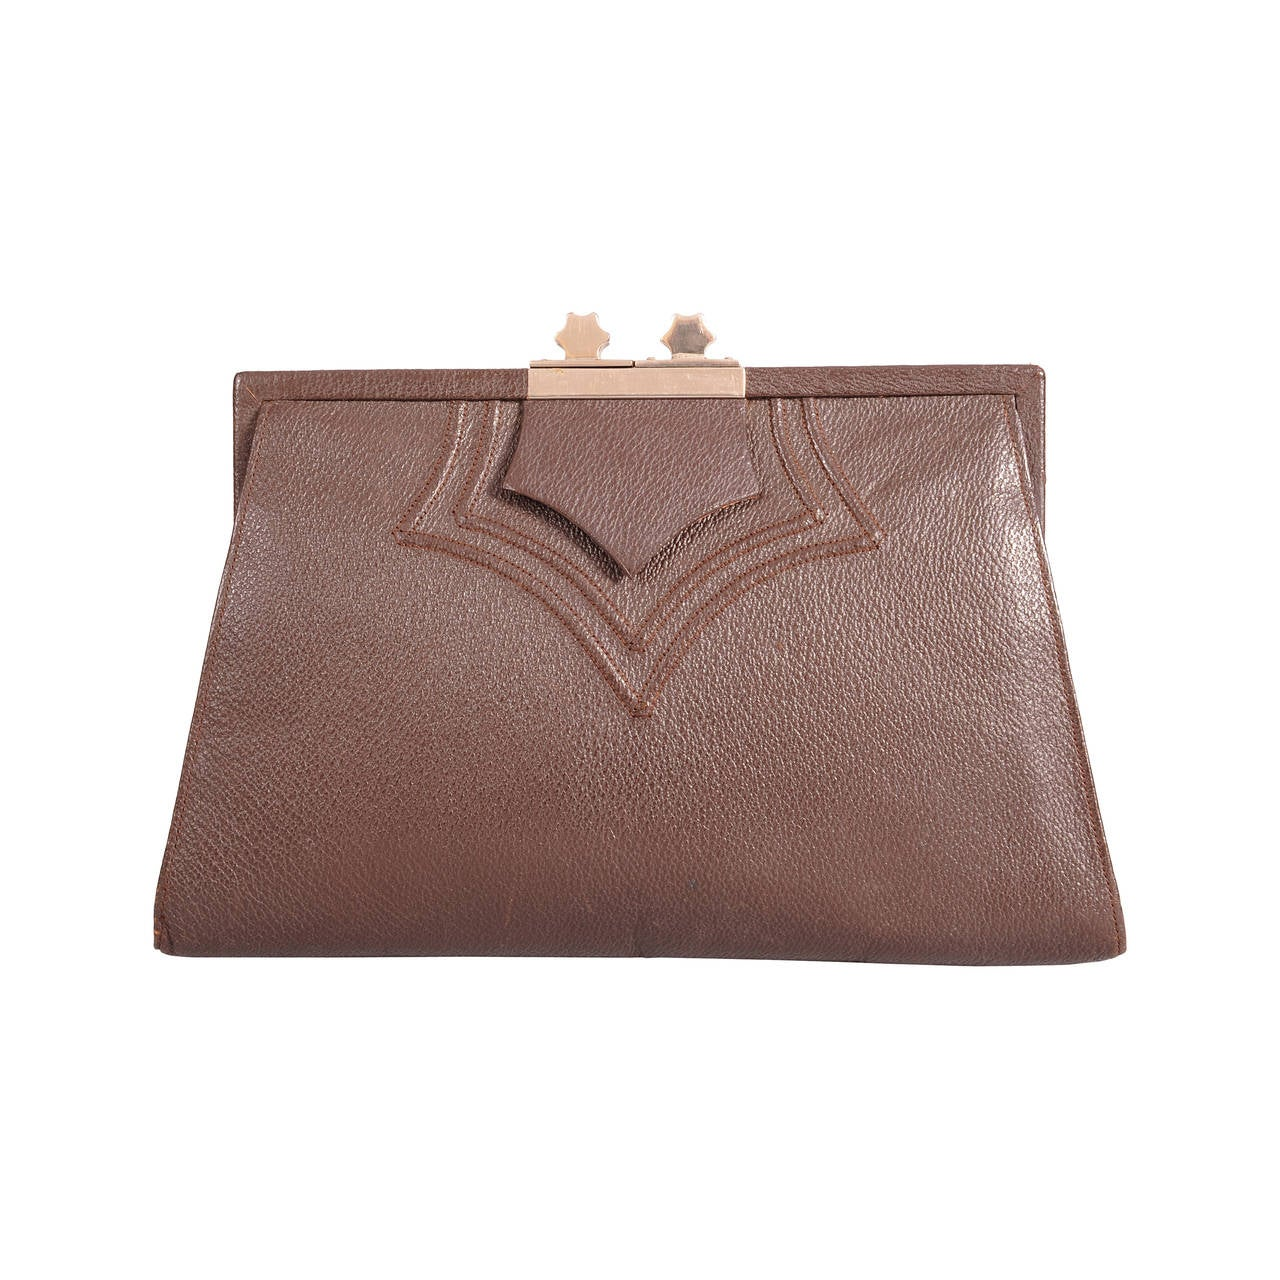 1930's British Art Deco Clutch Bag 1